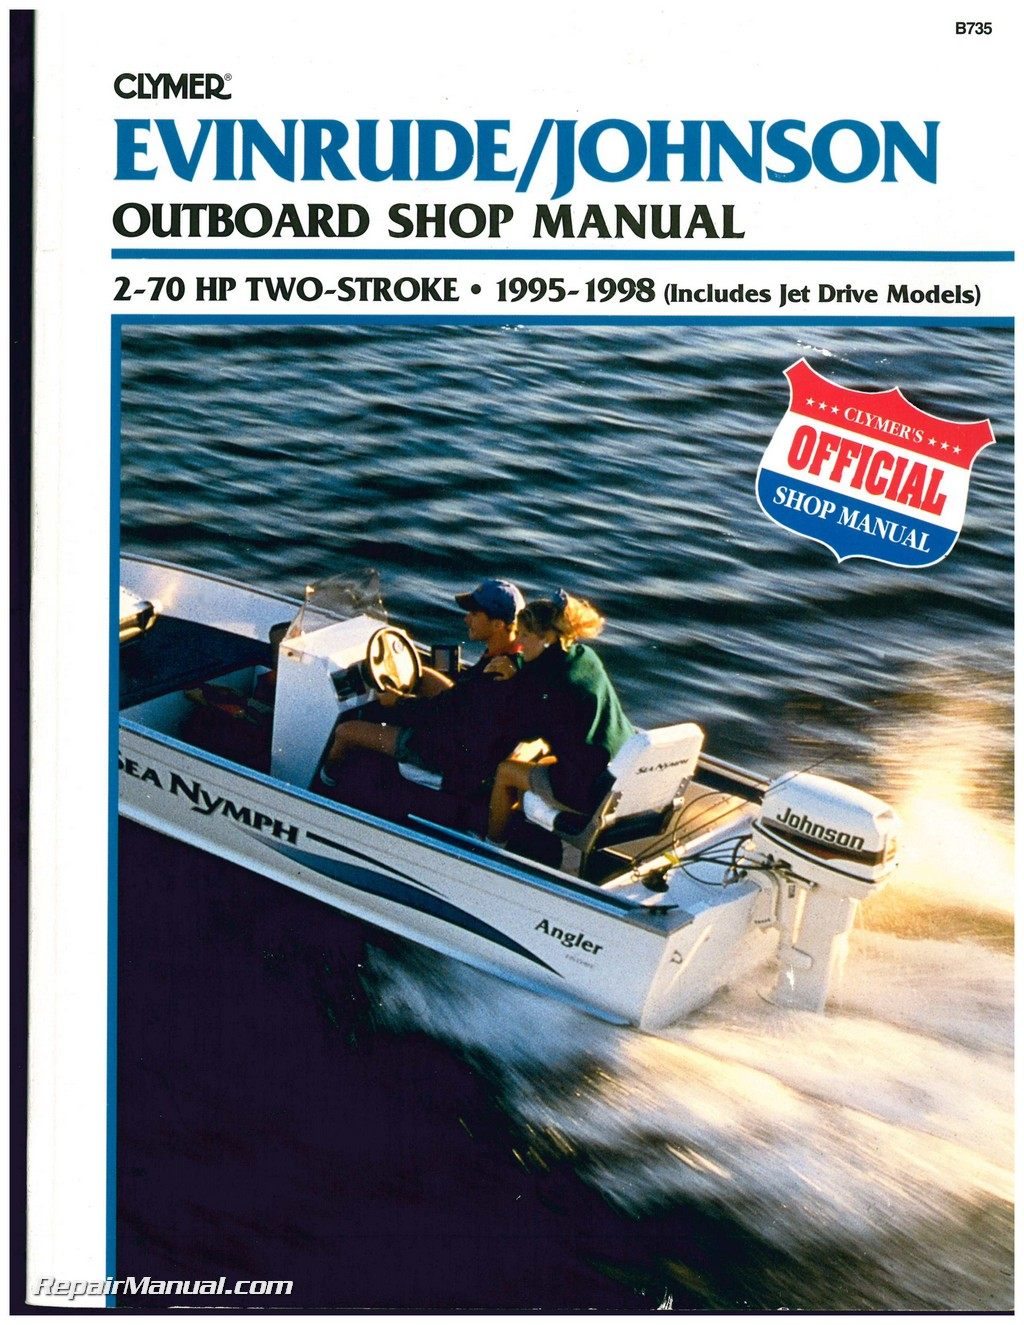 Used Evinrude Johnson 2-70 HP 2-Stroke Outboard Boat Shop Manual 1995 1996  1997 1998